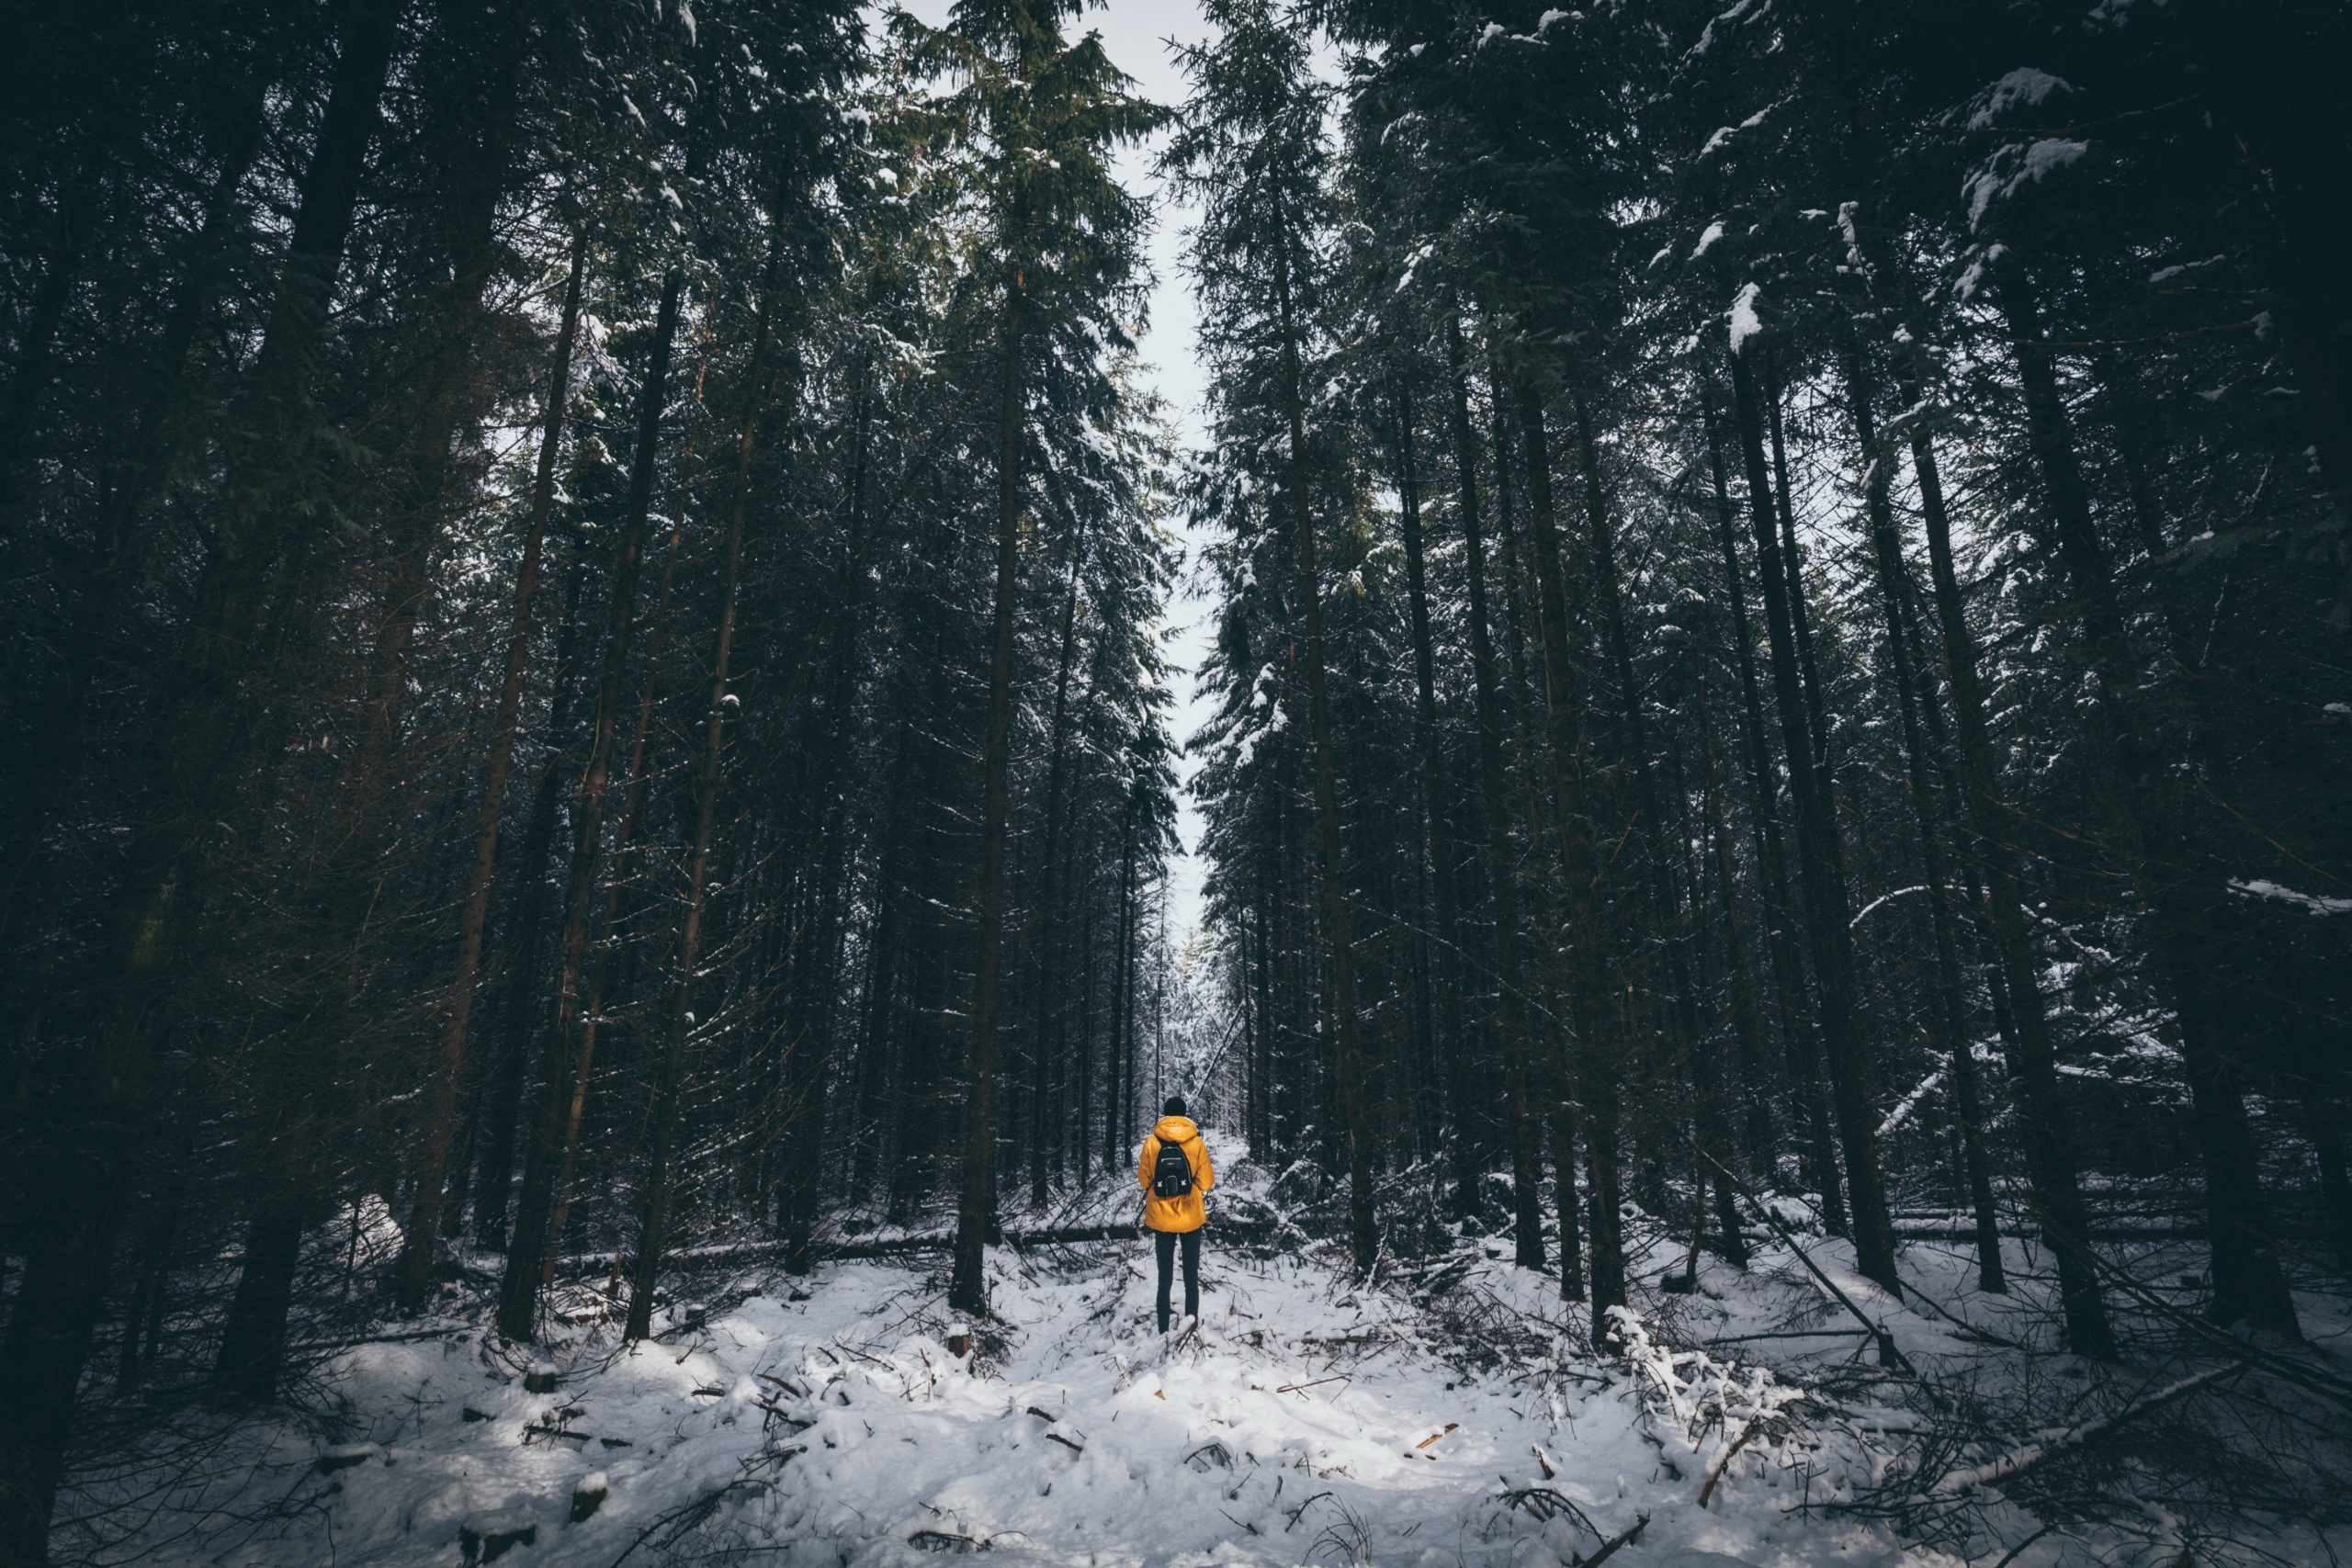 Hiker in yellow jacket with backpack paused in middle of winter forest